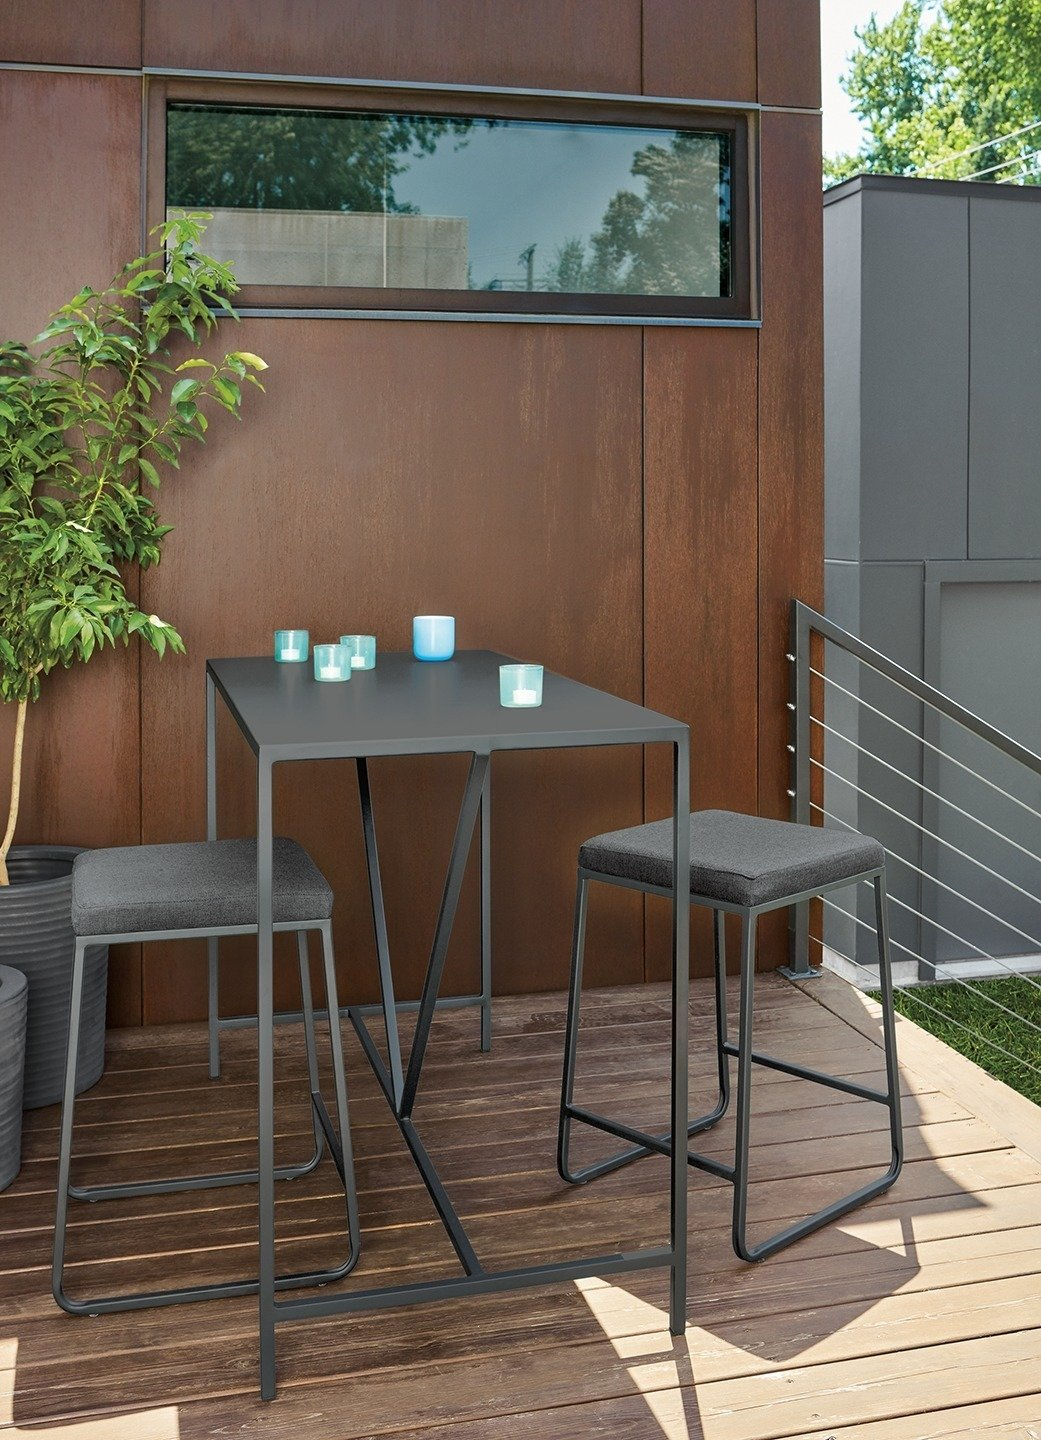 Slim counter table, Rollins stools Tagged: Outdoor, Wood Patio, Porch, Deck, Back Yard, Small Patio, Porch, Deck, and Planters Patio, Porch, Deck.  Photo 5 of 8 in Expert Design Advice: Outdoor Dining Spaces